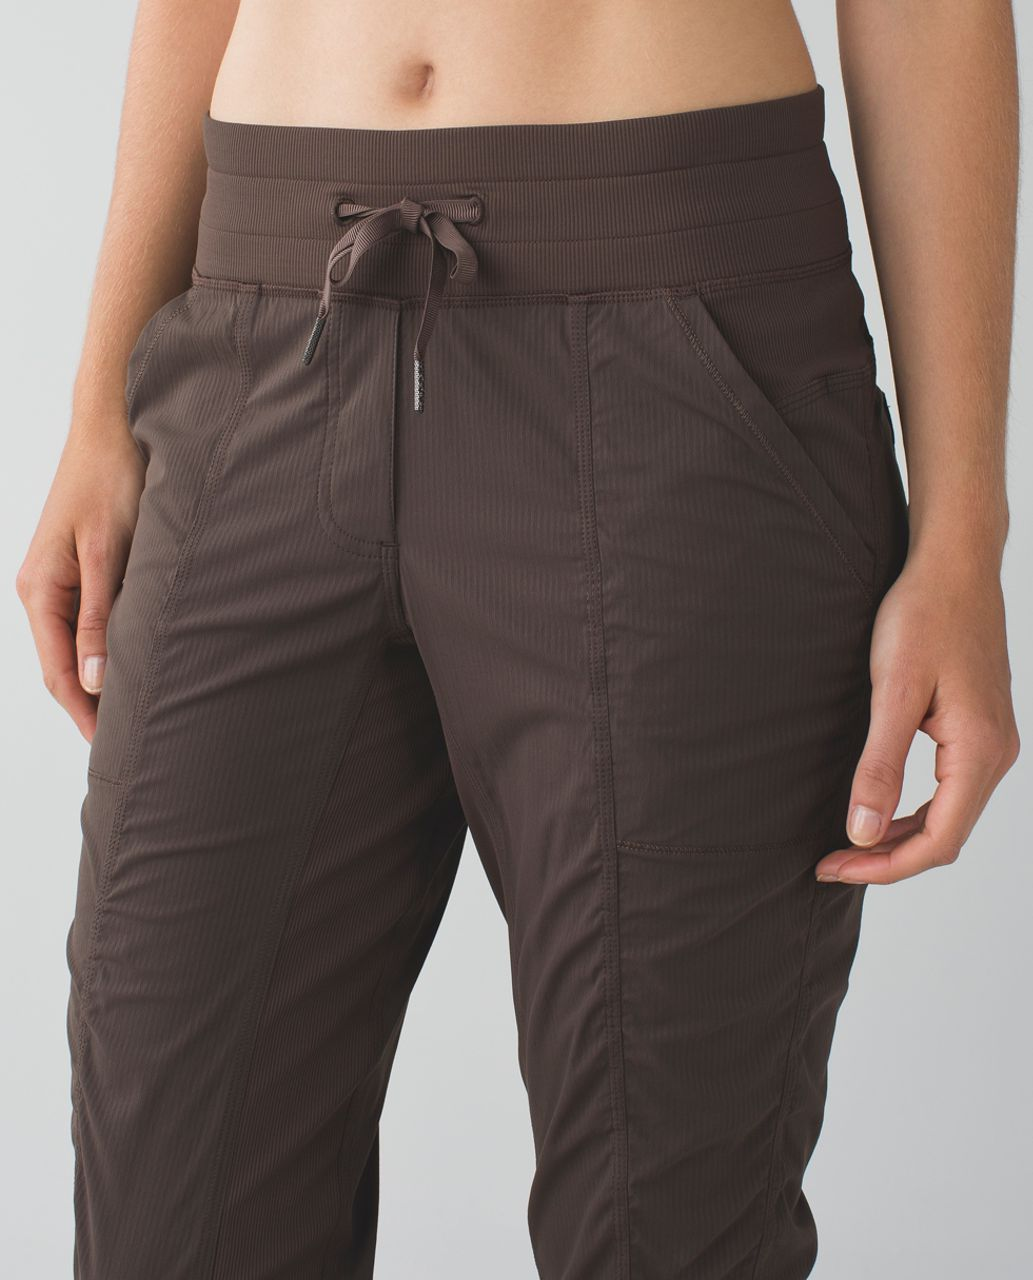 Lululemon Street To Studio Pant II - Bark Chocolate